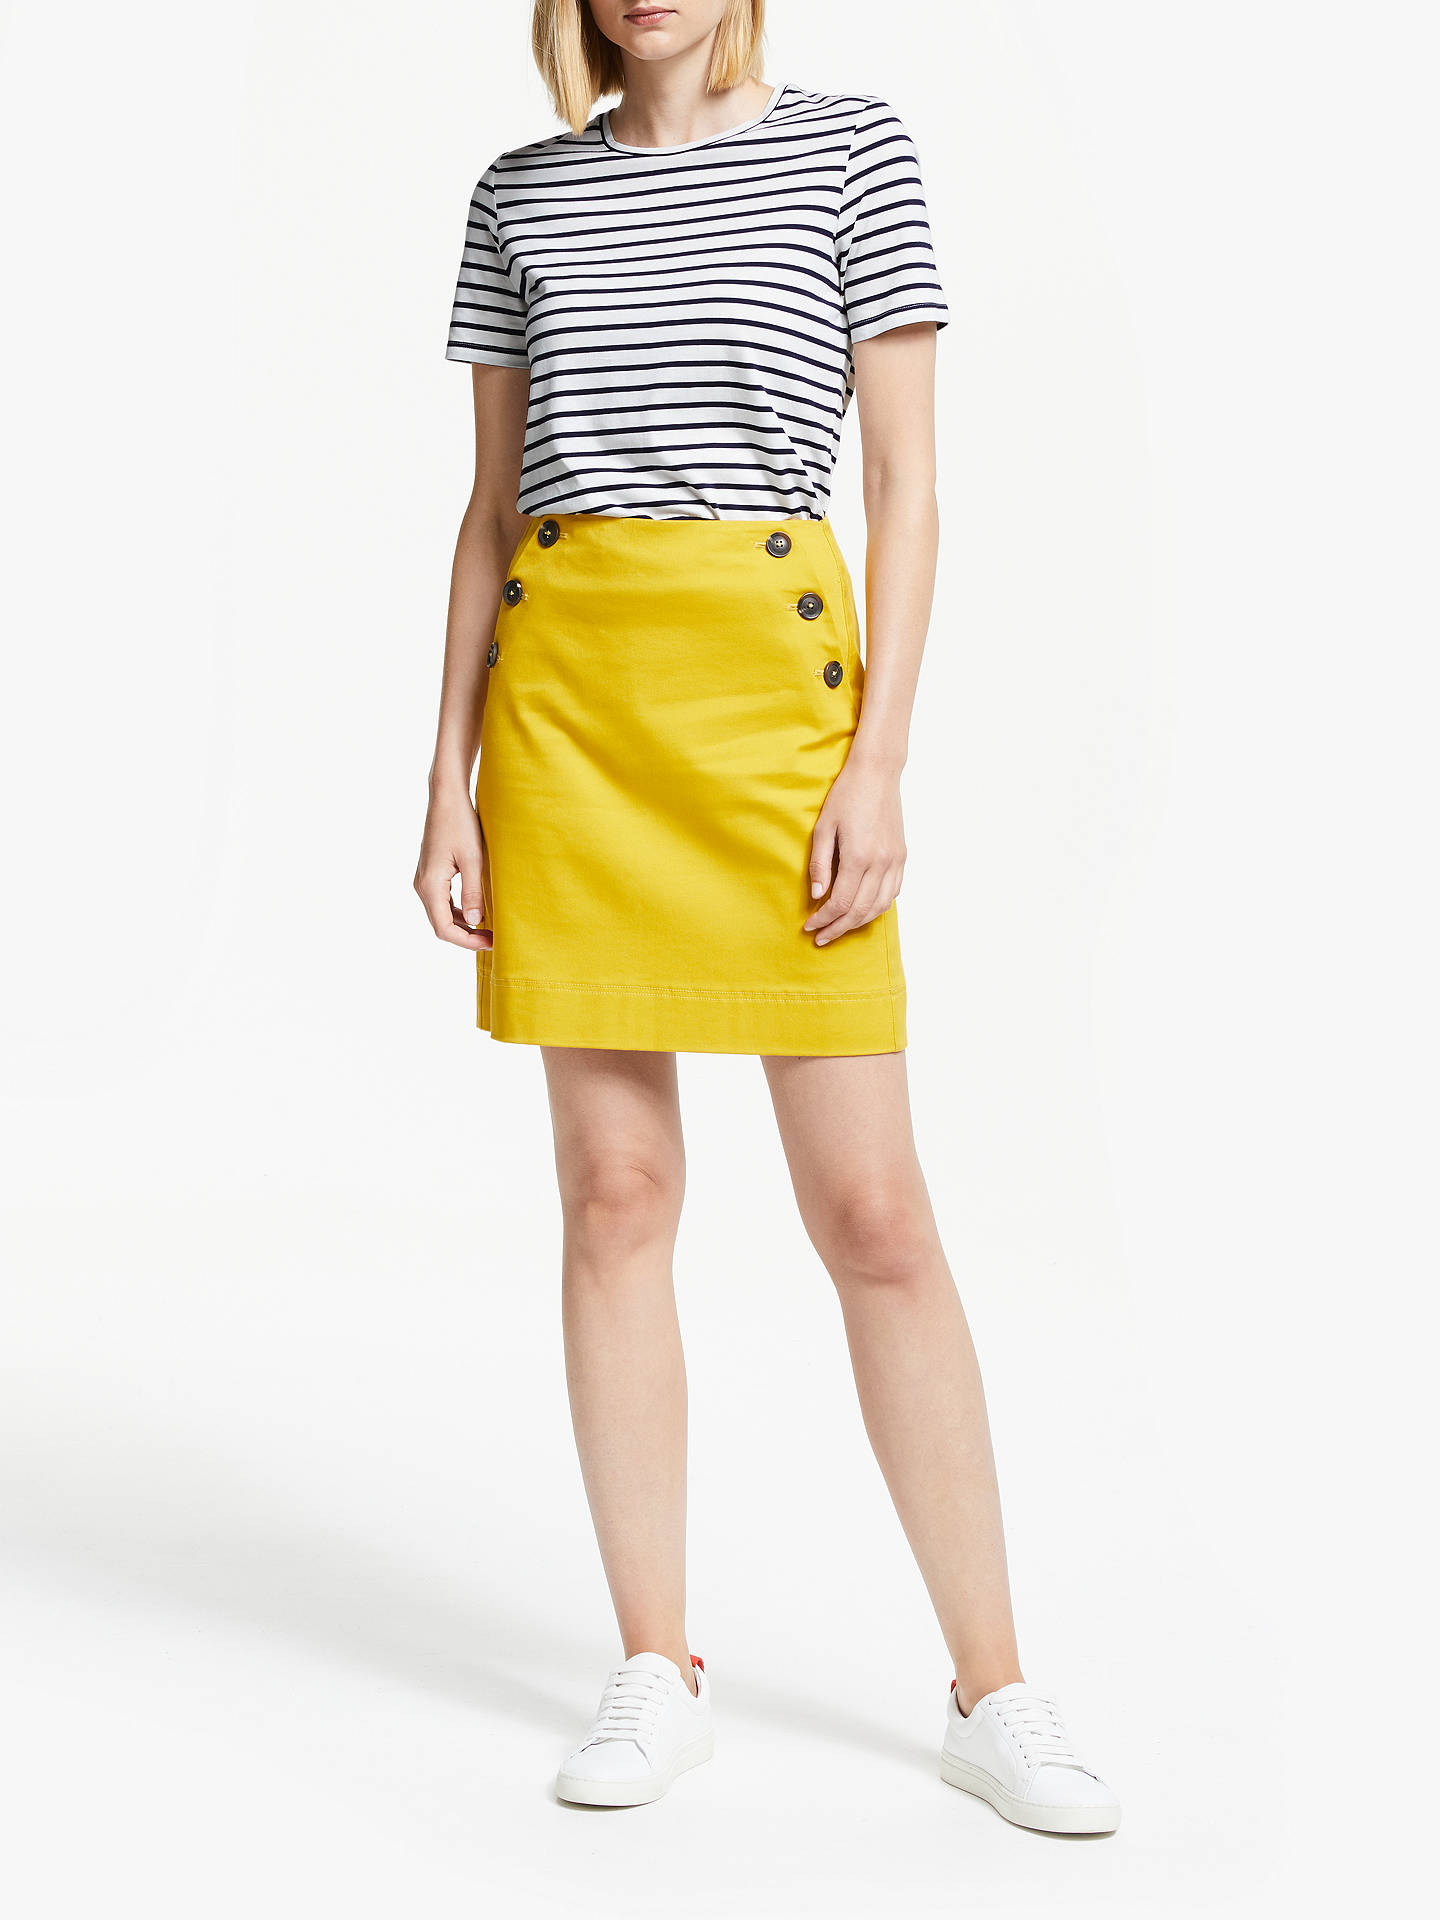 Buy Boden Stripe T-Shirt, Ivory/Navy, S Online at johnlewis.com